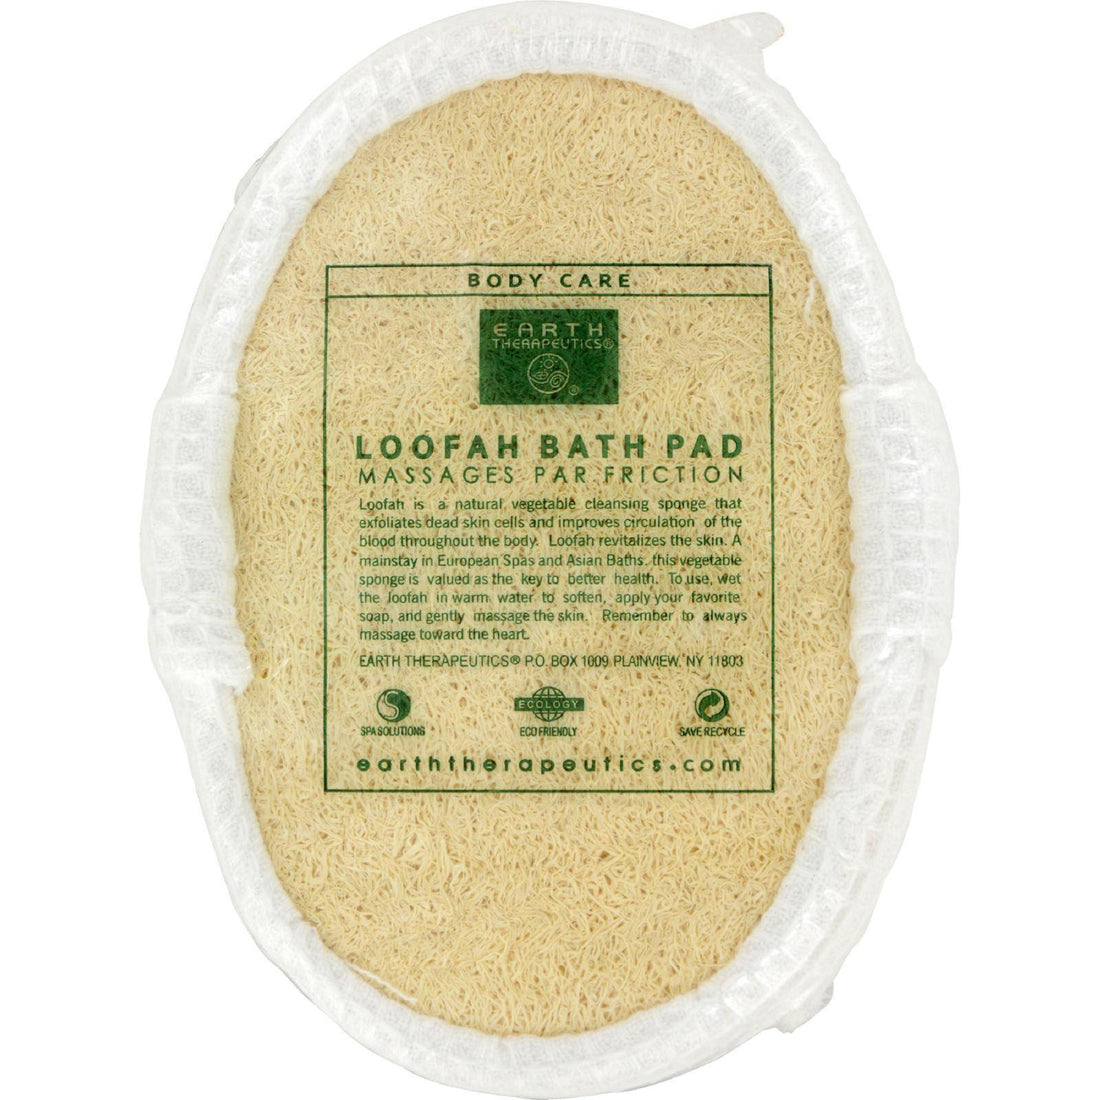 Mother Mantis: Earth Therapeutics Loofah Bath Pad - 1 Pad Earth Therapeutics